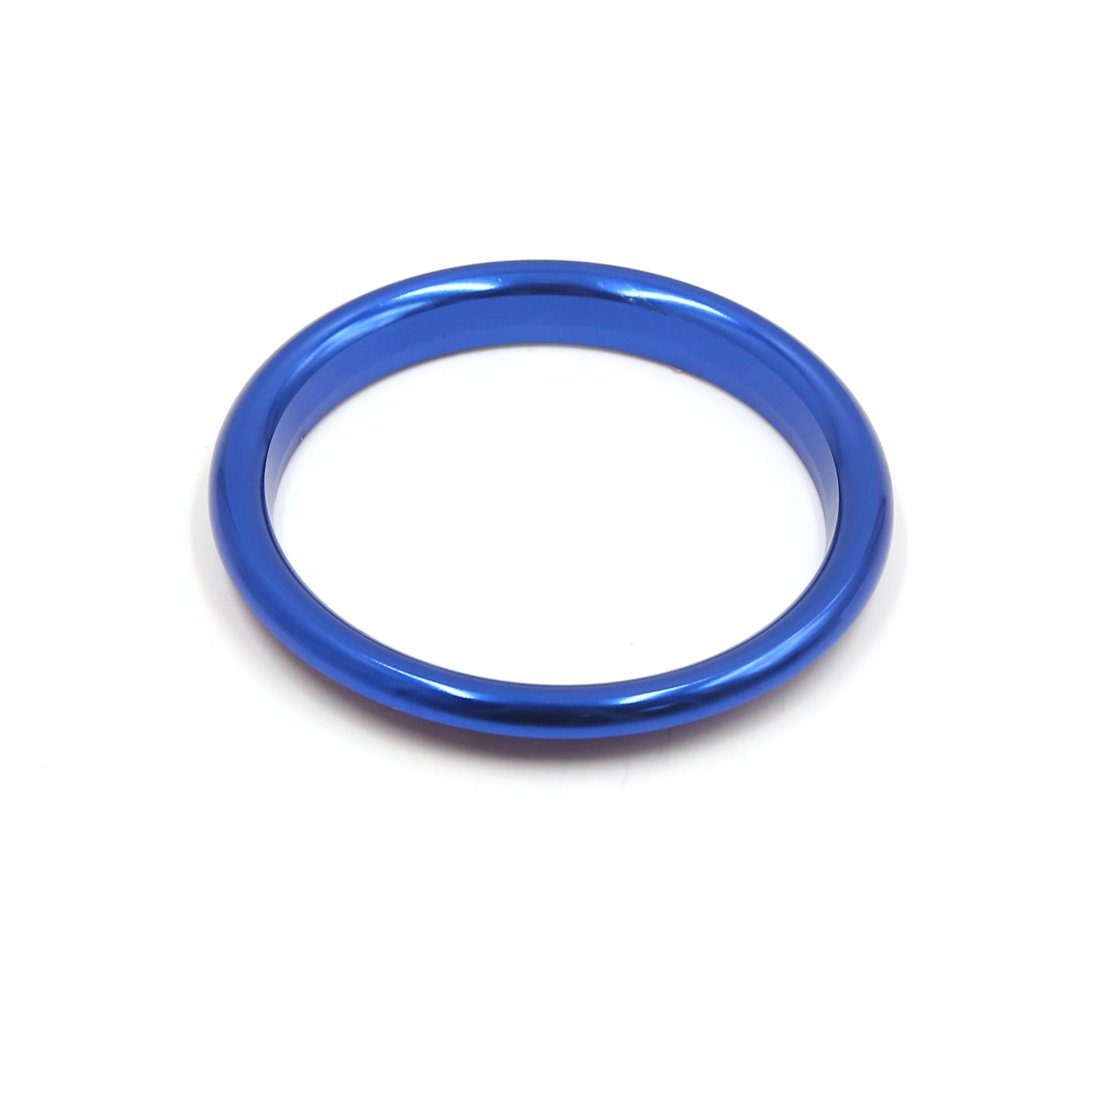 sourcing map 4Pcs Blue Aluminum Alloy Car Air Vent Outlet Rings Decorative Cover for Audi A3